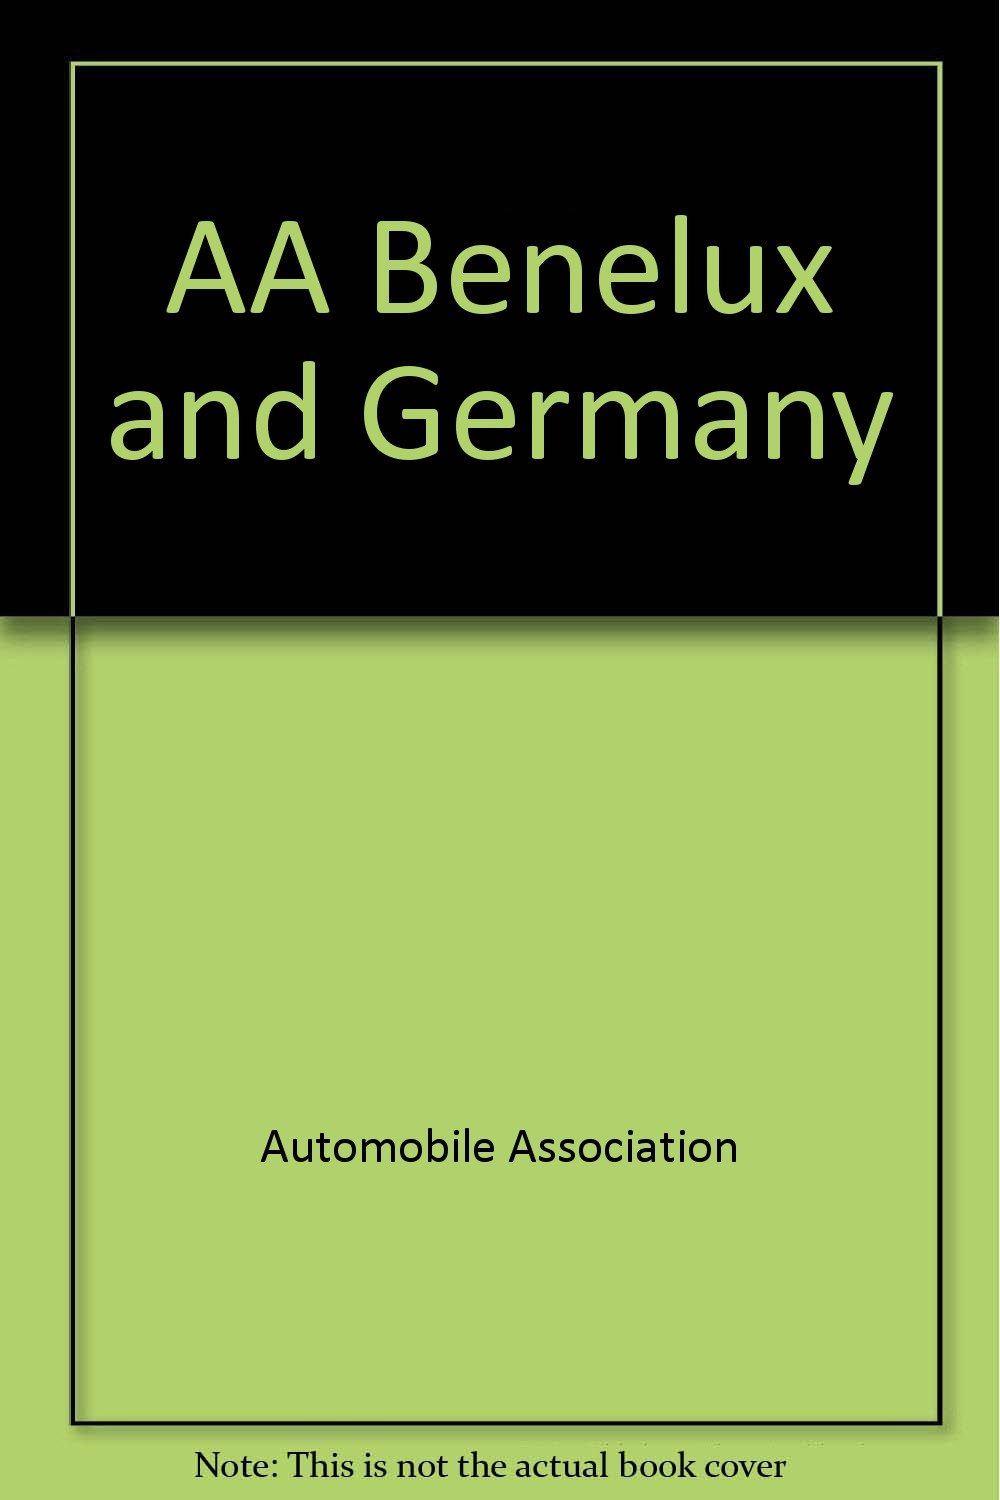 Aa Benelux and Germany Roadmap: Automobile ociation (Great ... on environment of germany, products of germany, road map western germany, partners of germany, introduction of germany, blueprint of germany, map of germany, detailed map germany, online maps germany, architecture of germany, education of germany, culture of germany, mop of germany, resources of germany, overview of germany, team of germany, terrain of germany, features of germany,